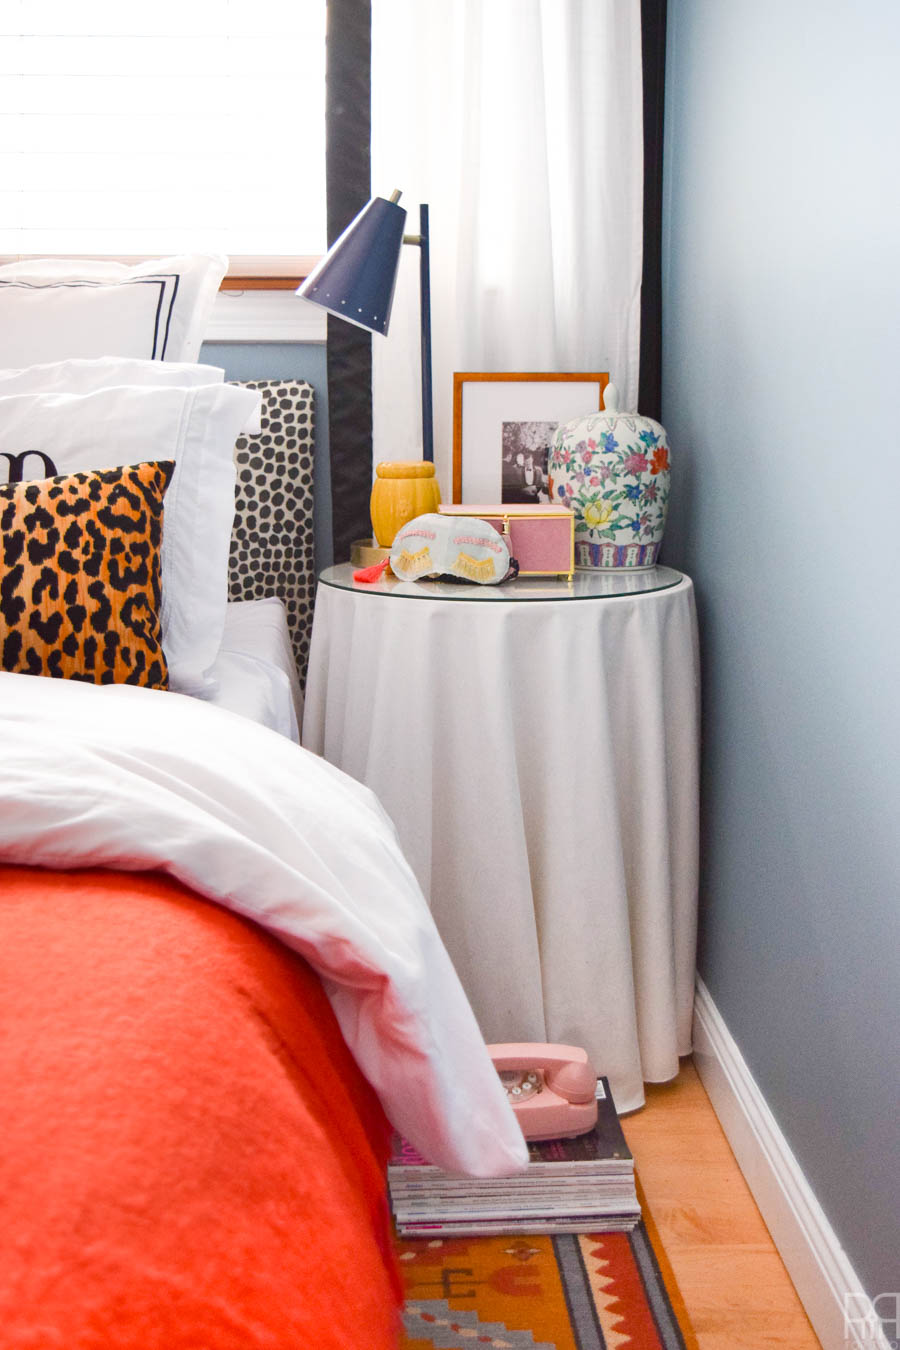 Till sleep do us part - sleeping in separate beds is the answer to a good night's sleep. Come find out why we're giving sleep a chance with different bedrooms.